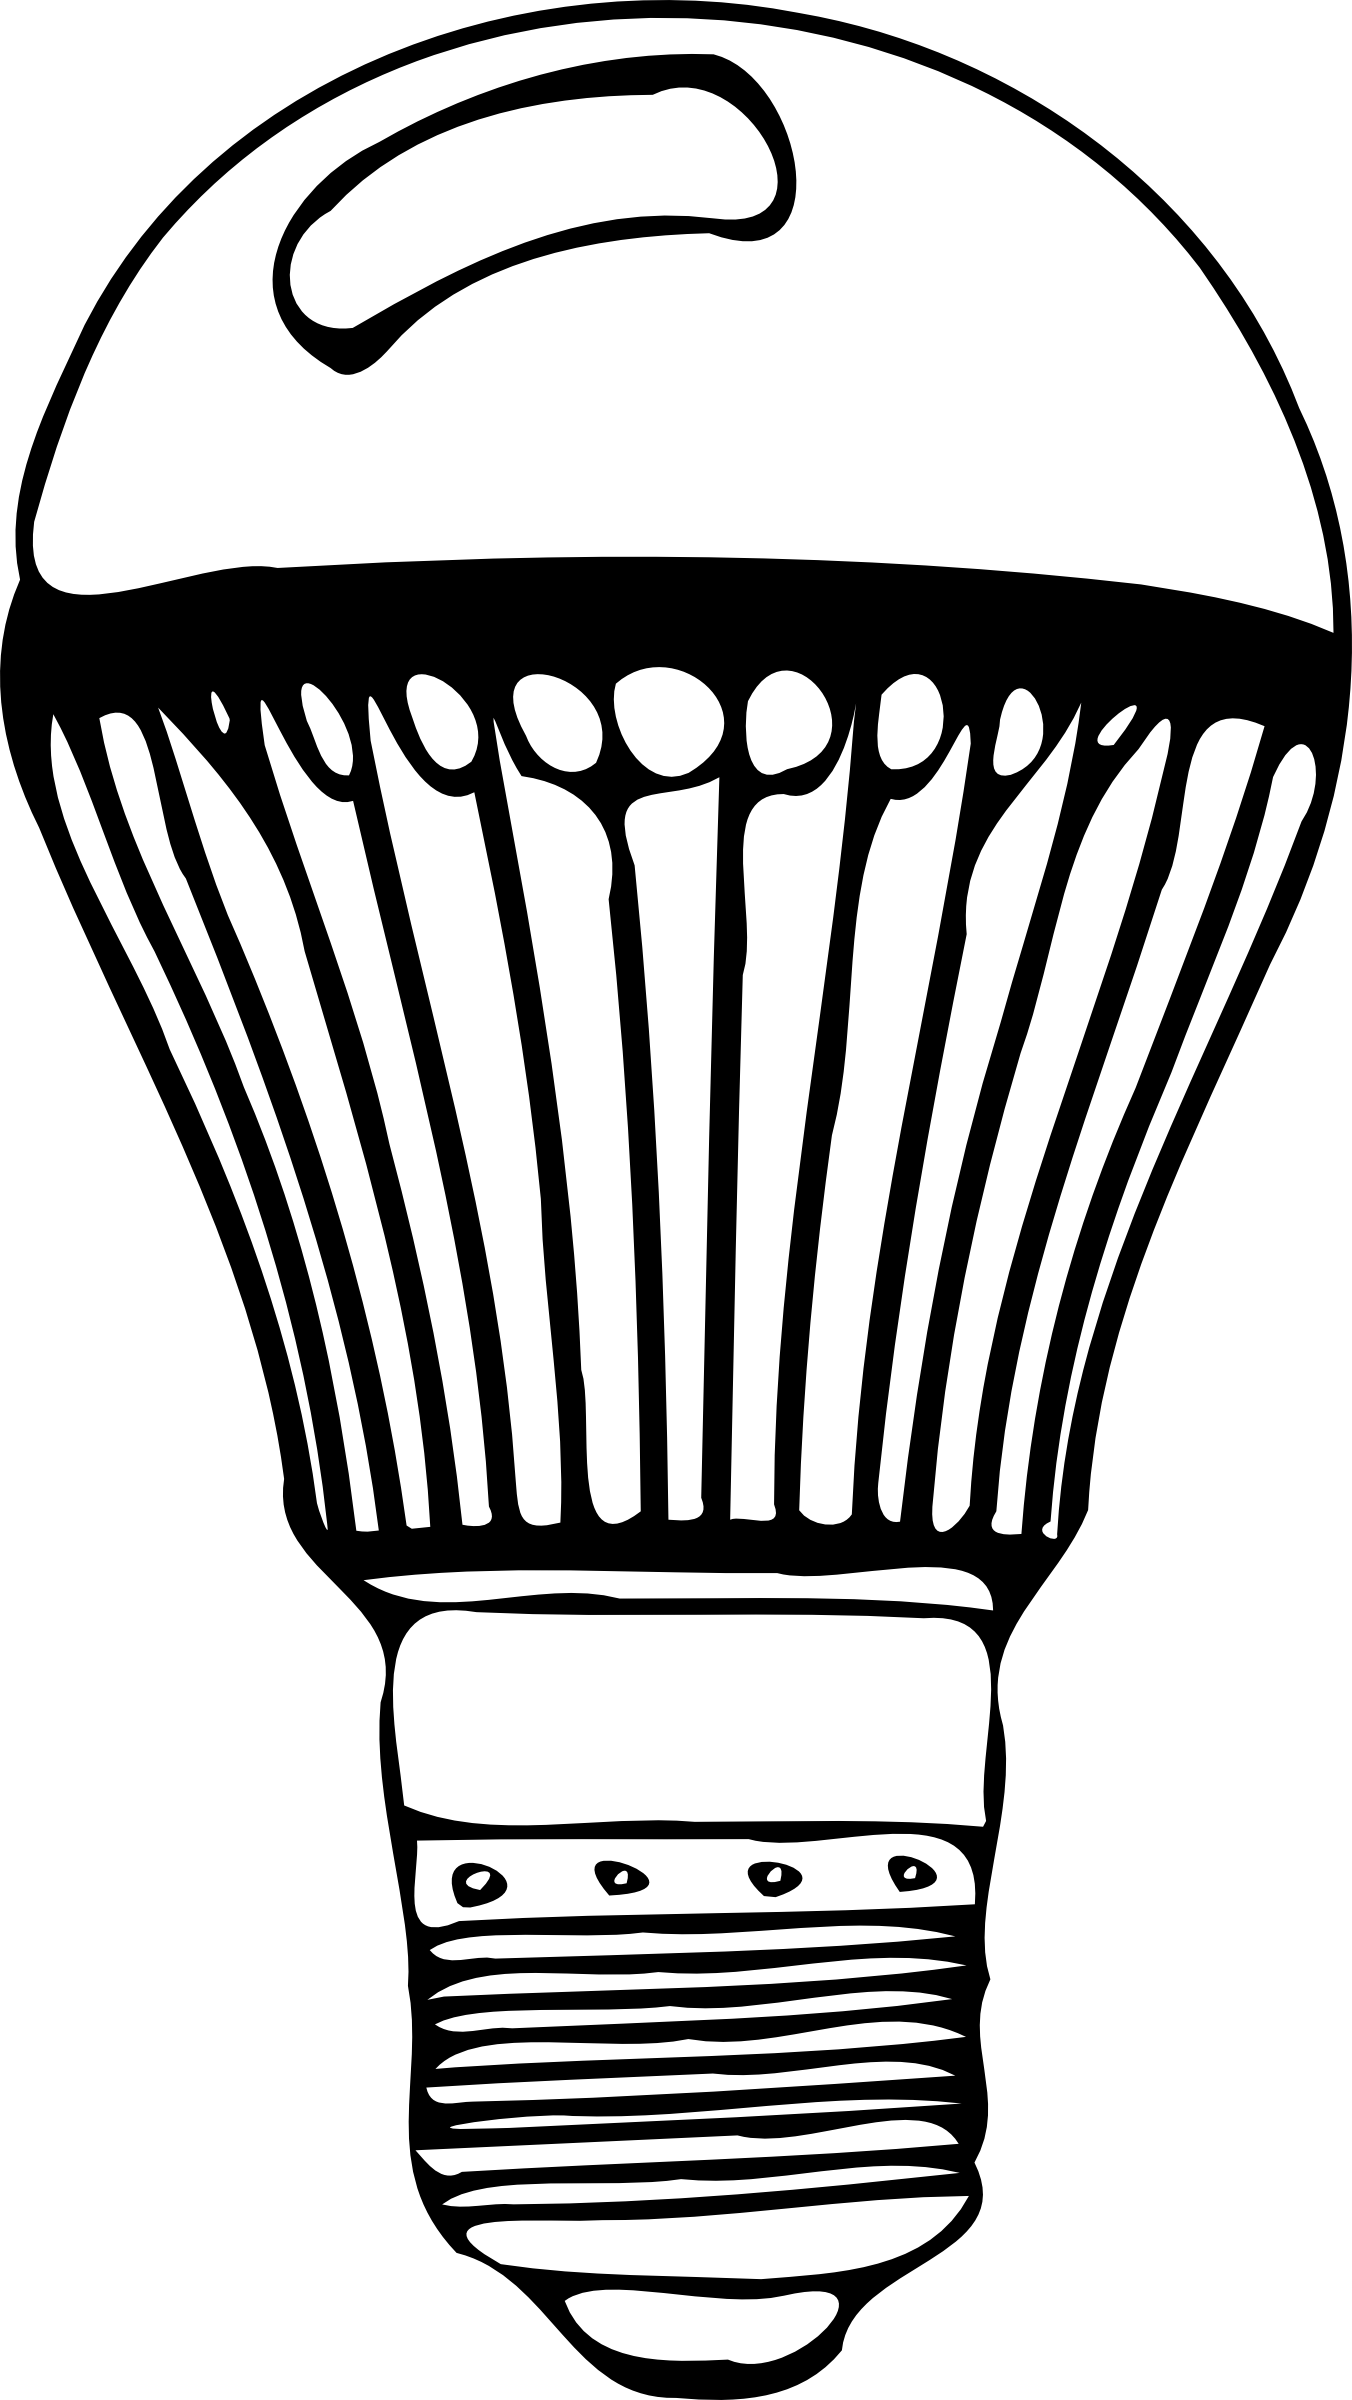 Glowing Light Bulb Png Member Focus Joule Solar Energy